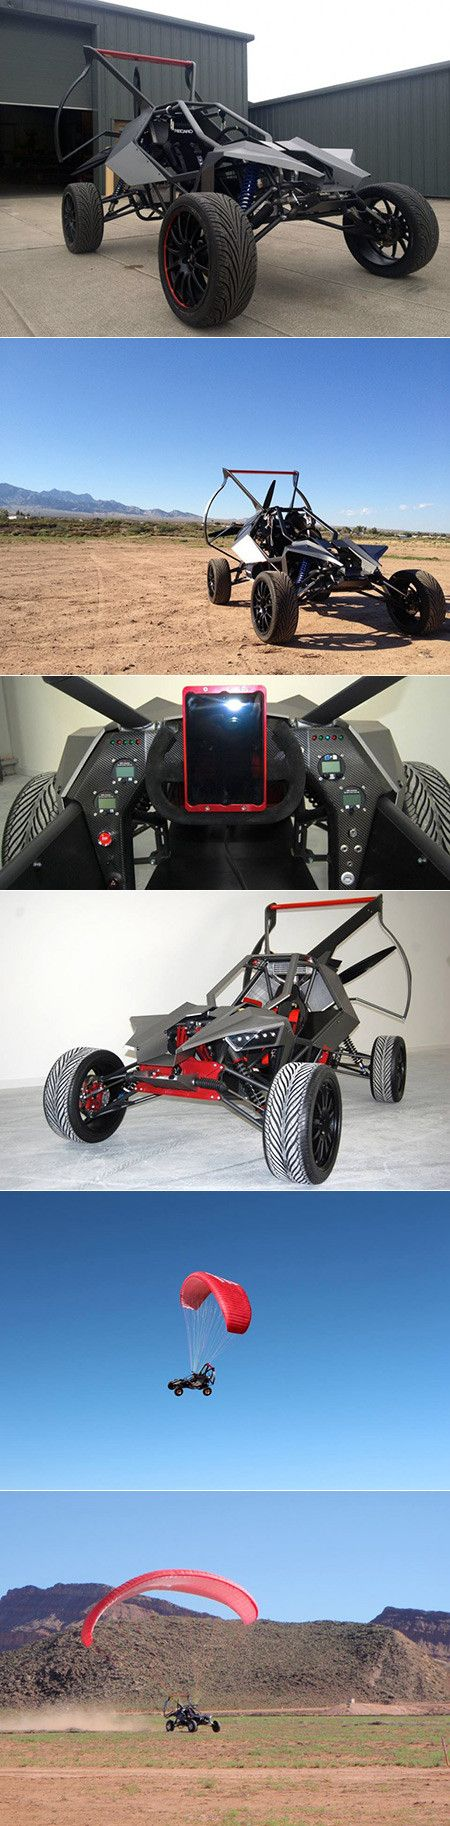 6 Pictures of the Batmobile-Inspired SkyRunner, an All-Terrain Flying Vehicle - TechEBlog